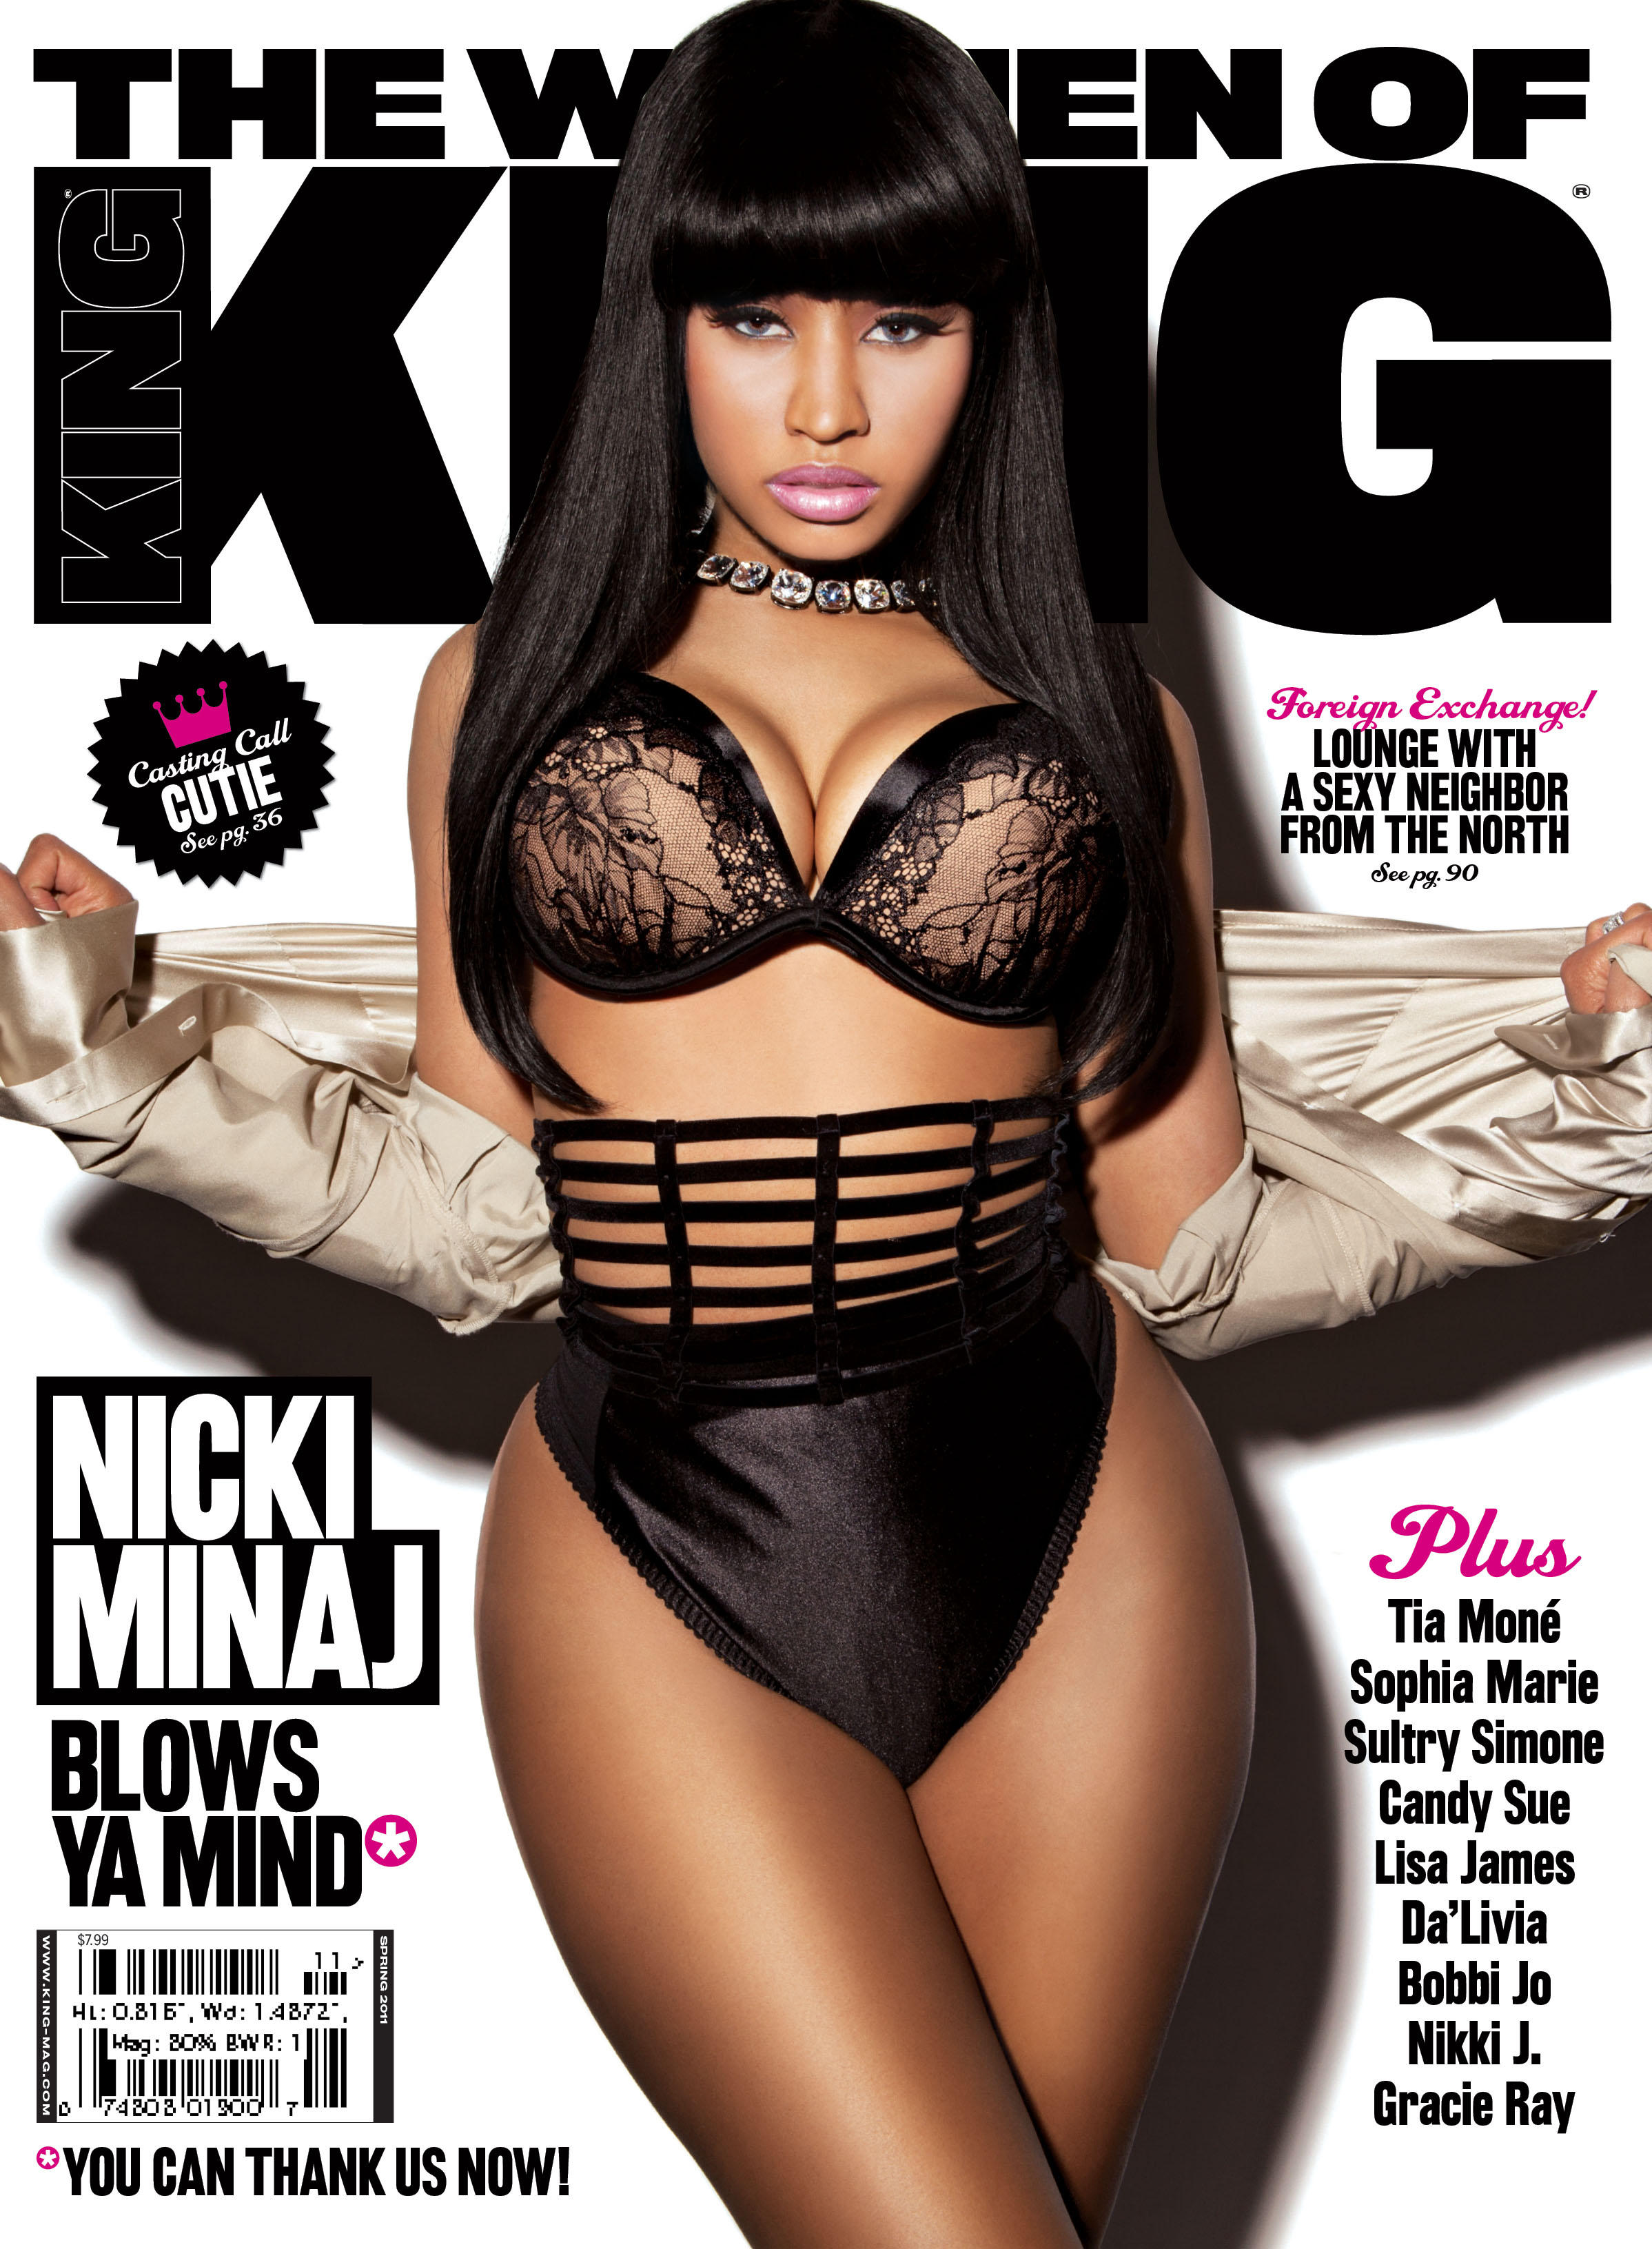 Nicki Minaj is set to appear on the cover of King magazines March/April 2011